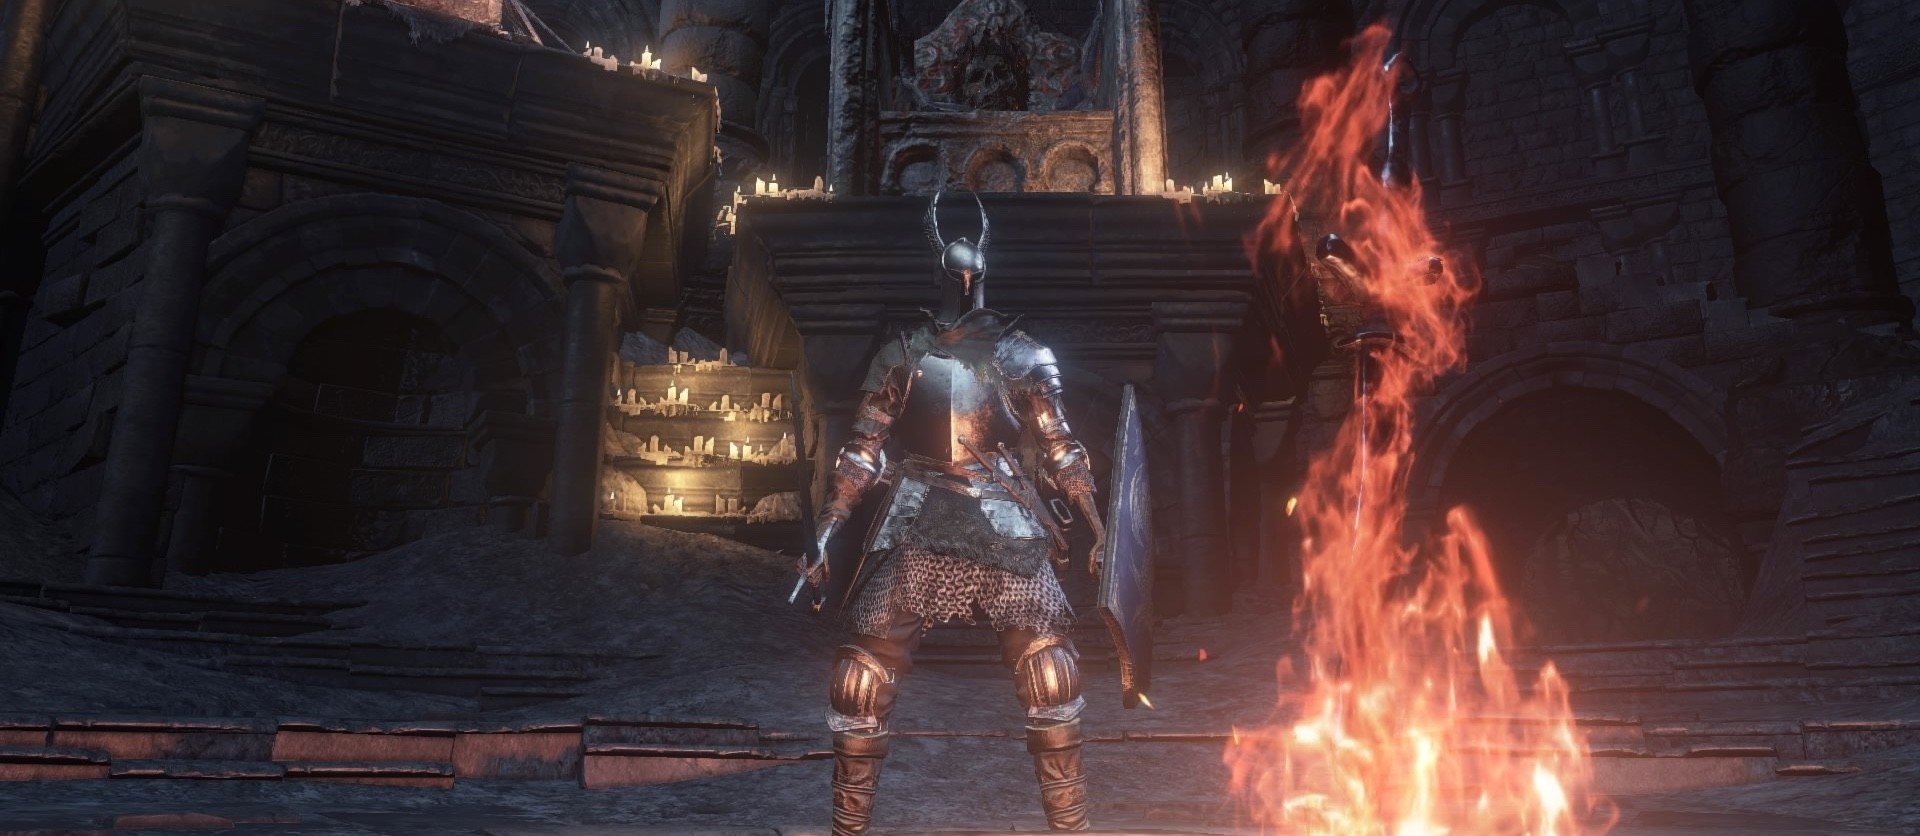 ds3_bonfire